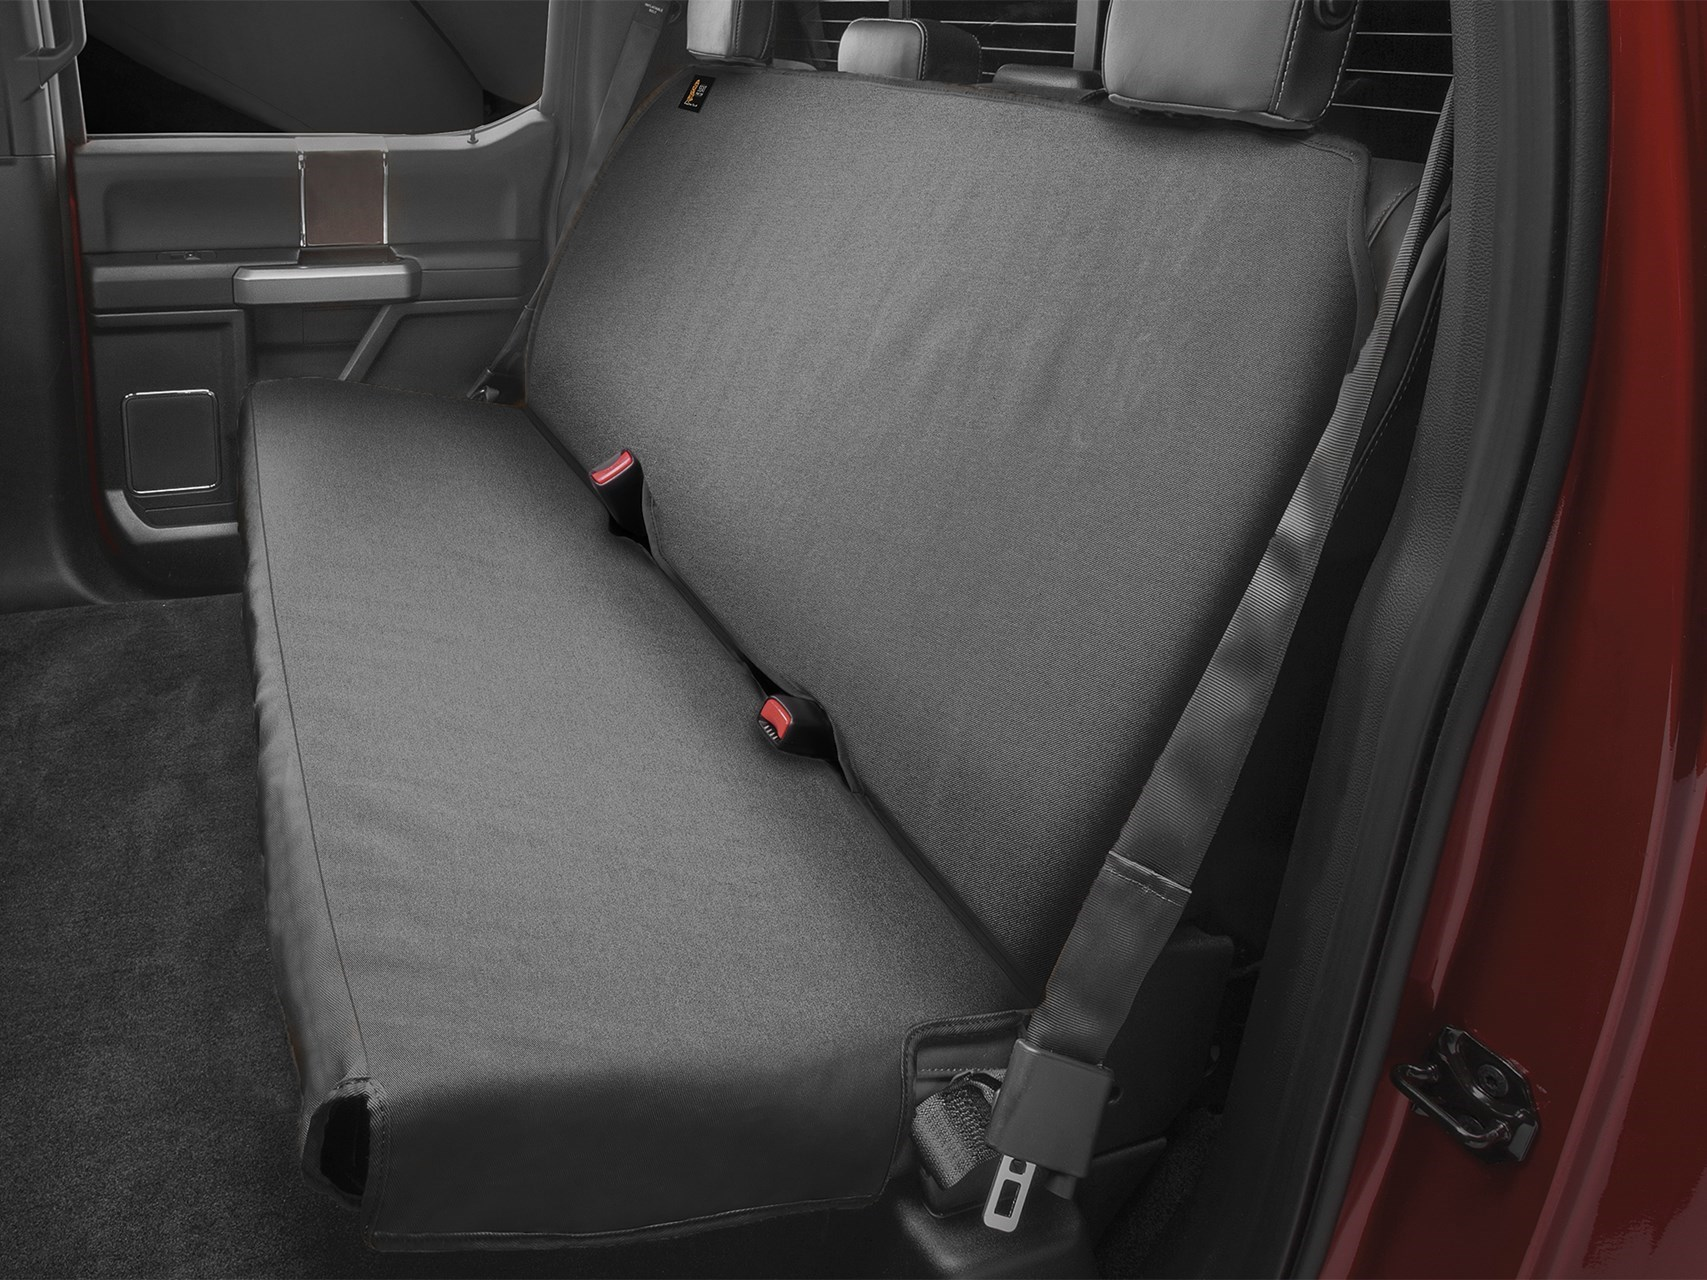 2019 Jeep Cherokee | Seat Protector For Pets   Vehicle Seat Covers |  WeathertechEurope.com English (EN)